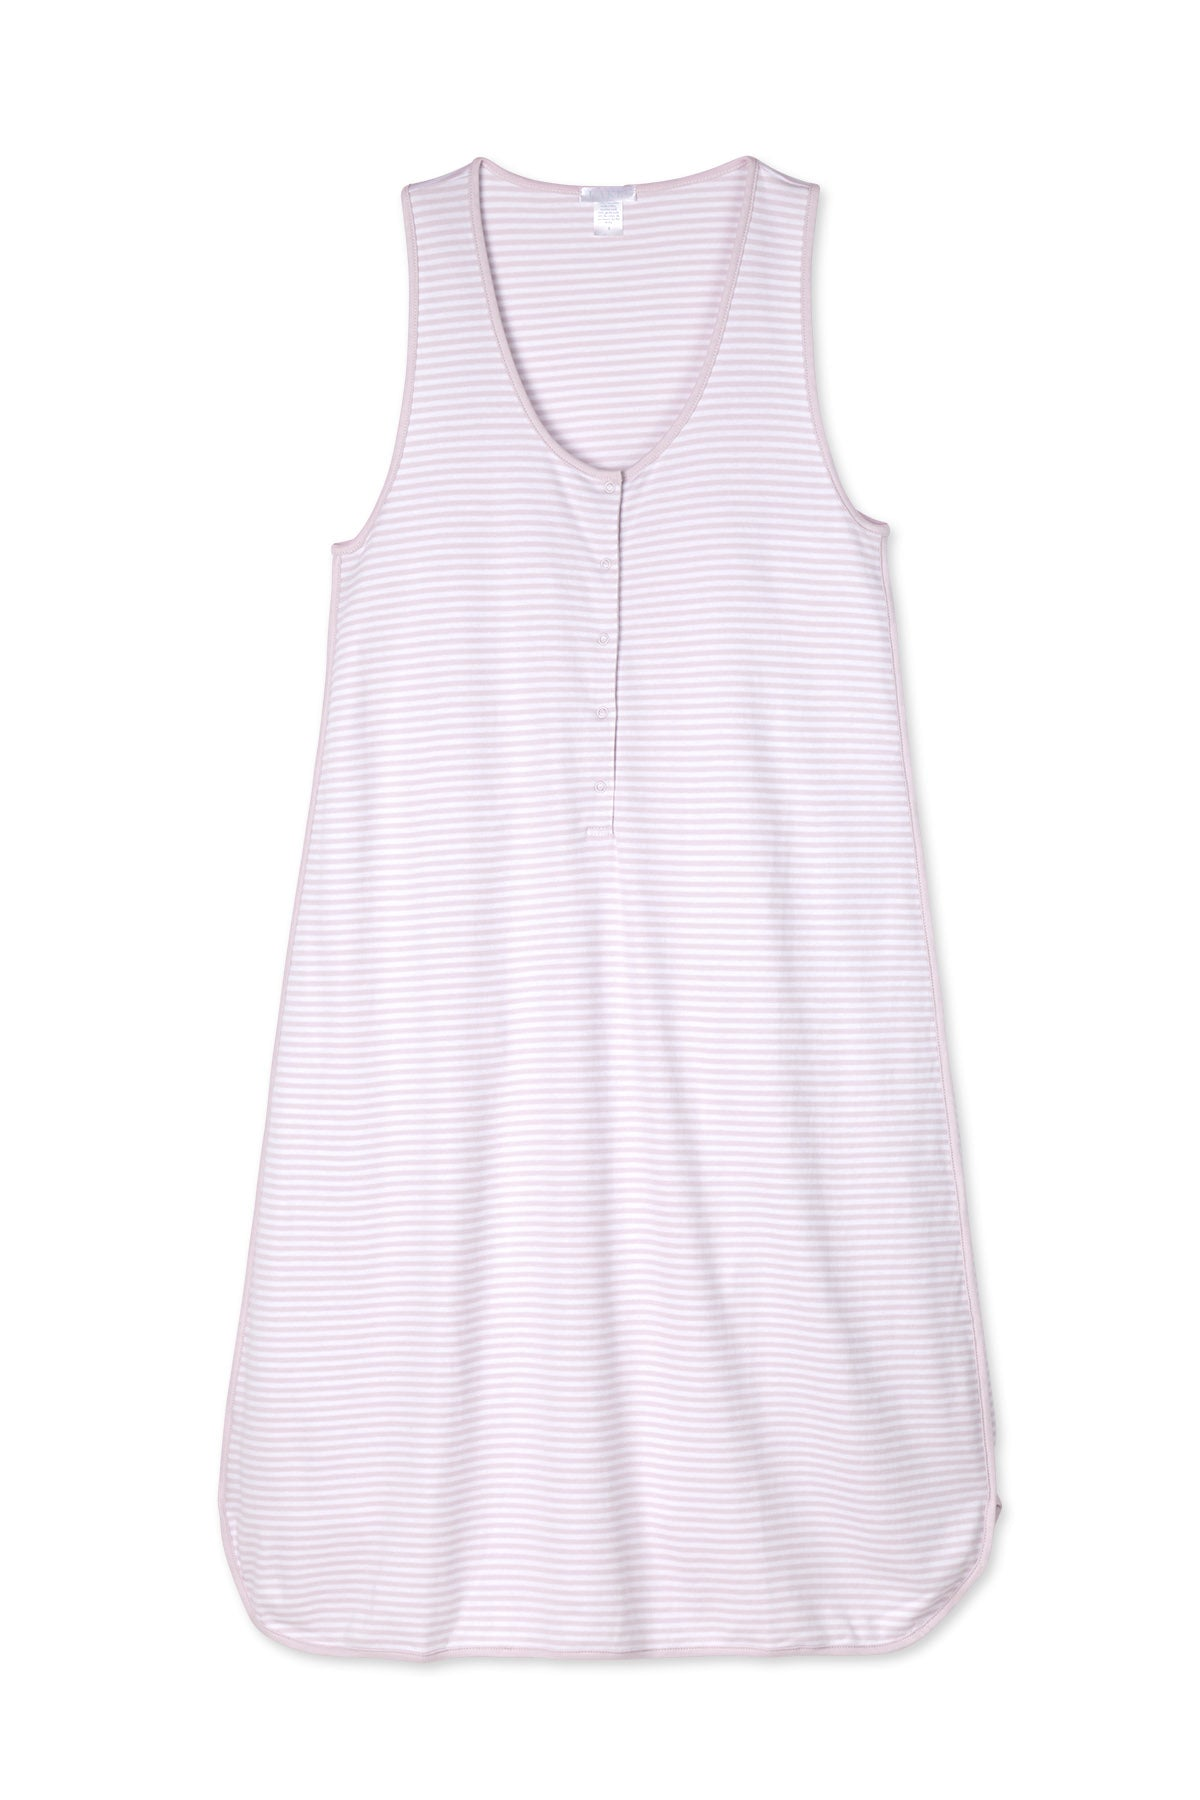 Pima Maternity Tank Gown in Lavender